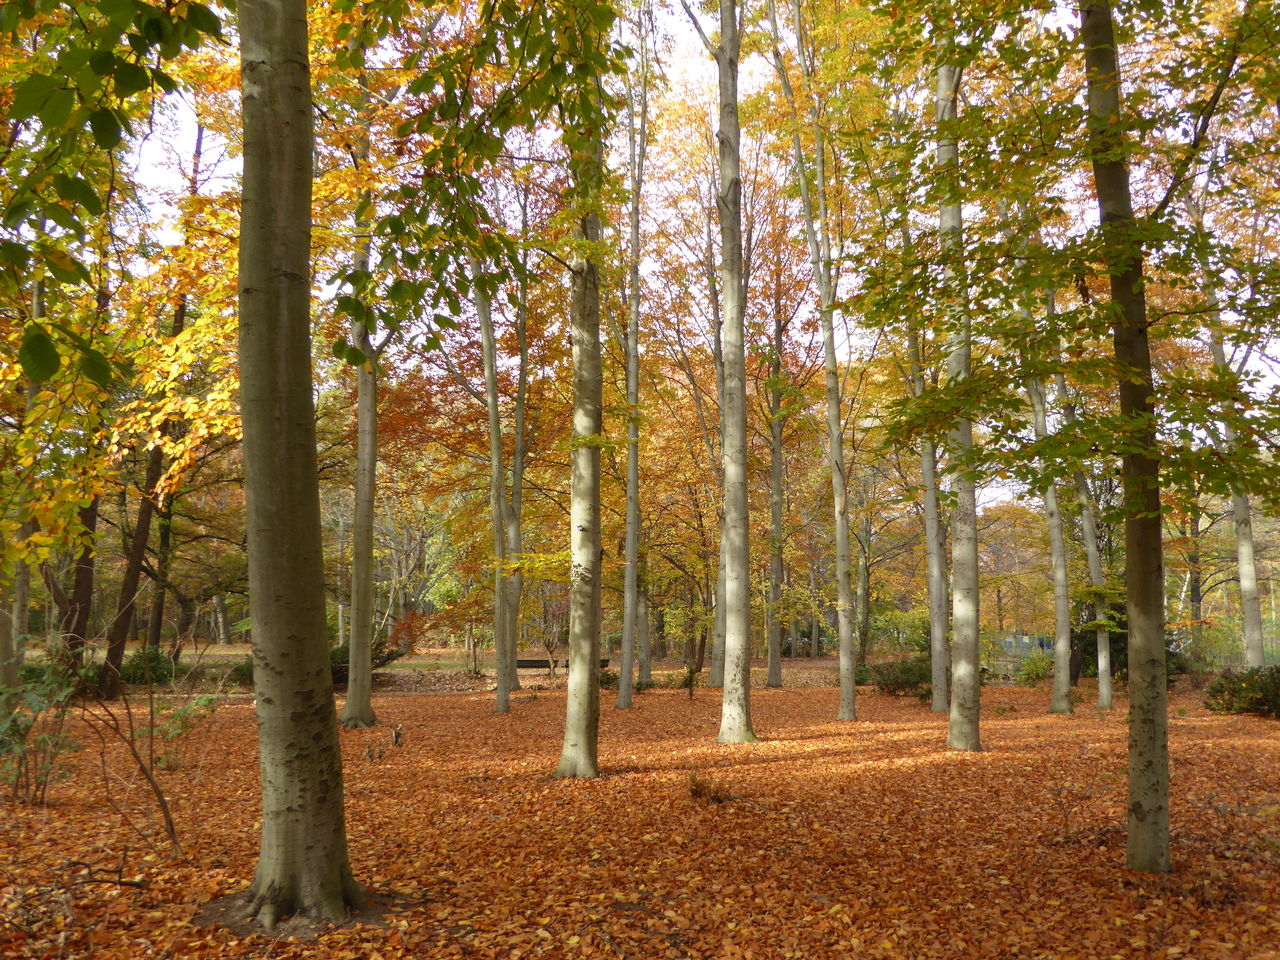 autumn, tree, leaf, forest, nature, woodland, change, scenics, outdoors, landscape, beauty in nature, day, tranquil scene, deciduous tree, no people, tree trunk, multi colored, branch, wilderness area